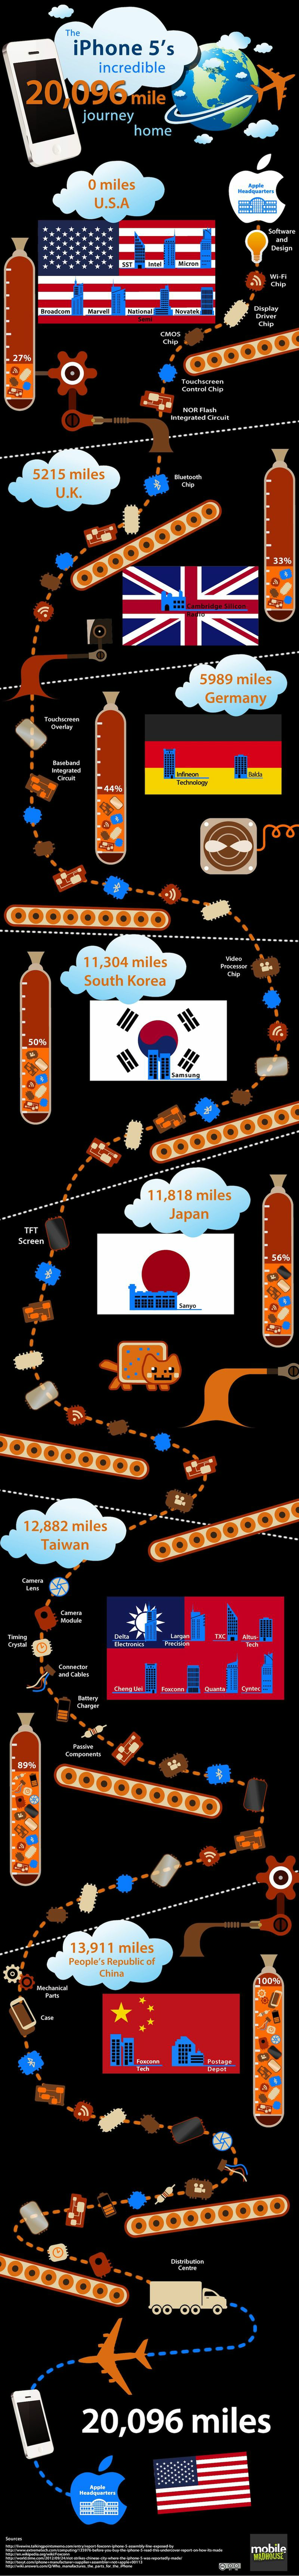 Iphone_journey_infographic